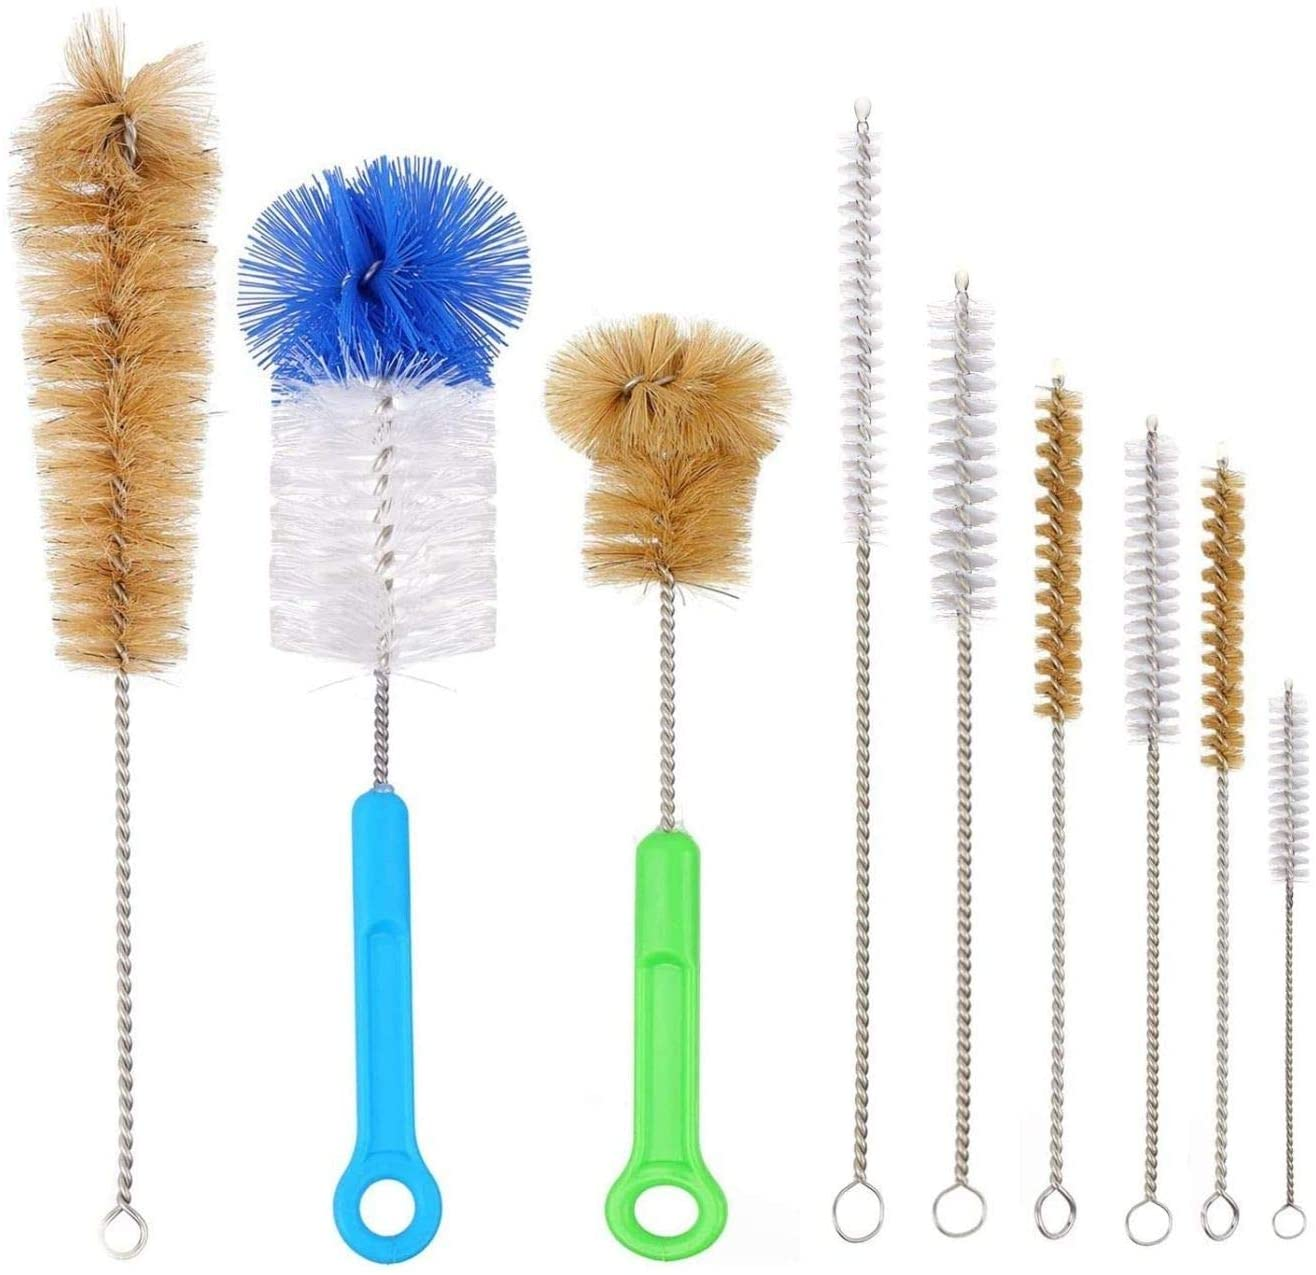 Hookah cleaning brushes